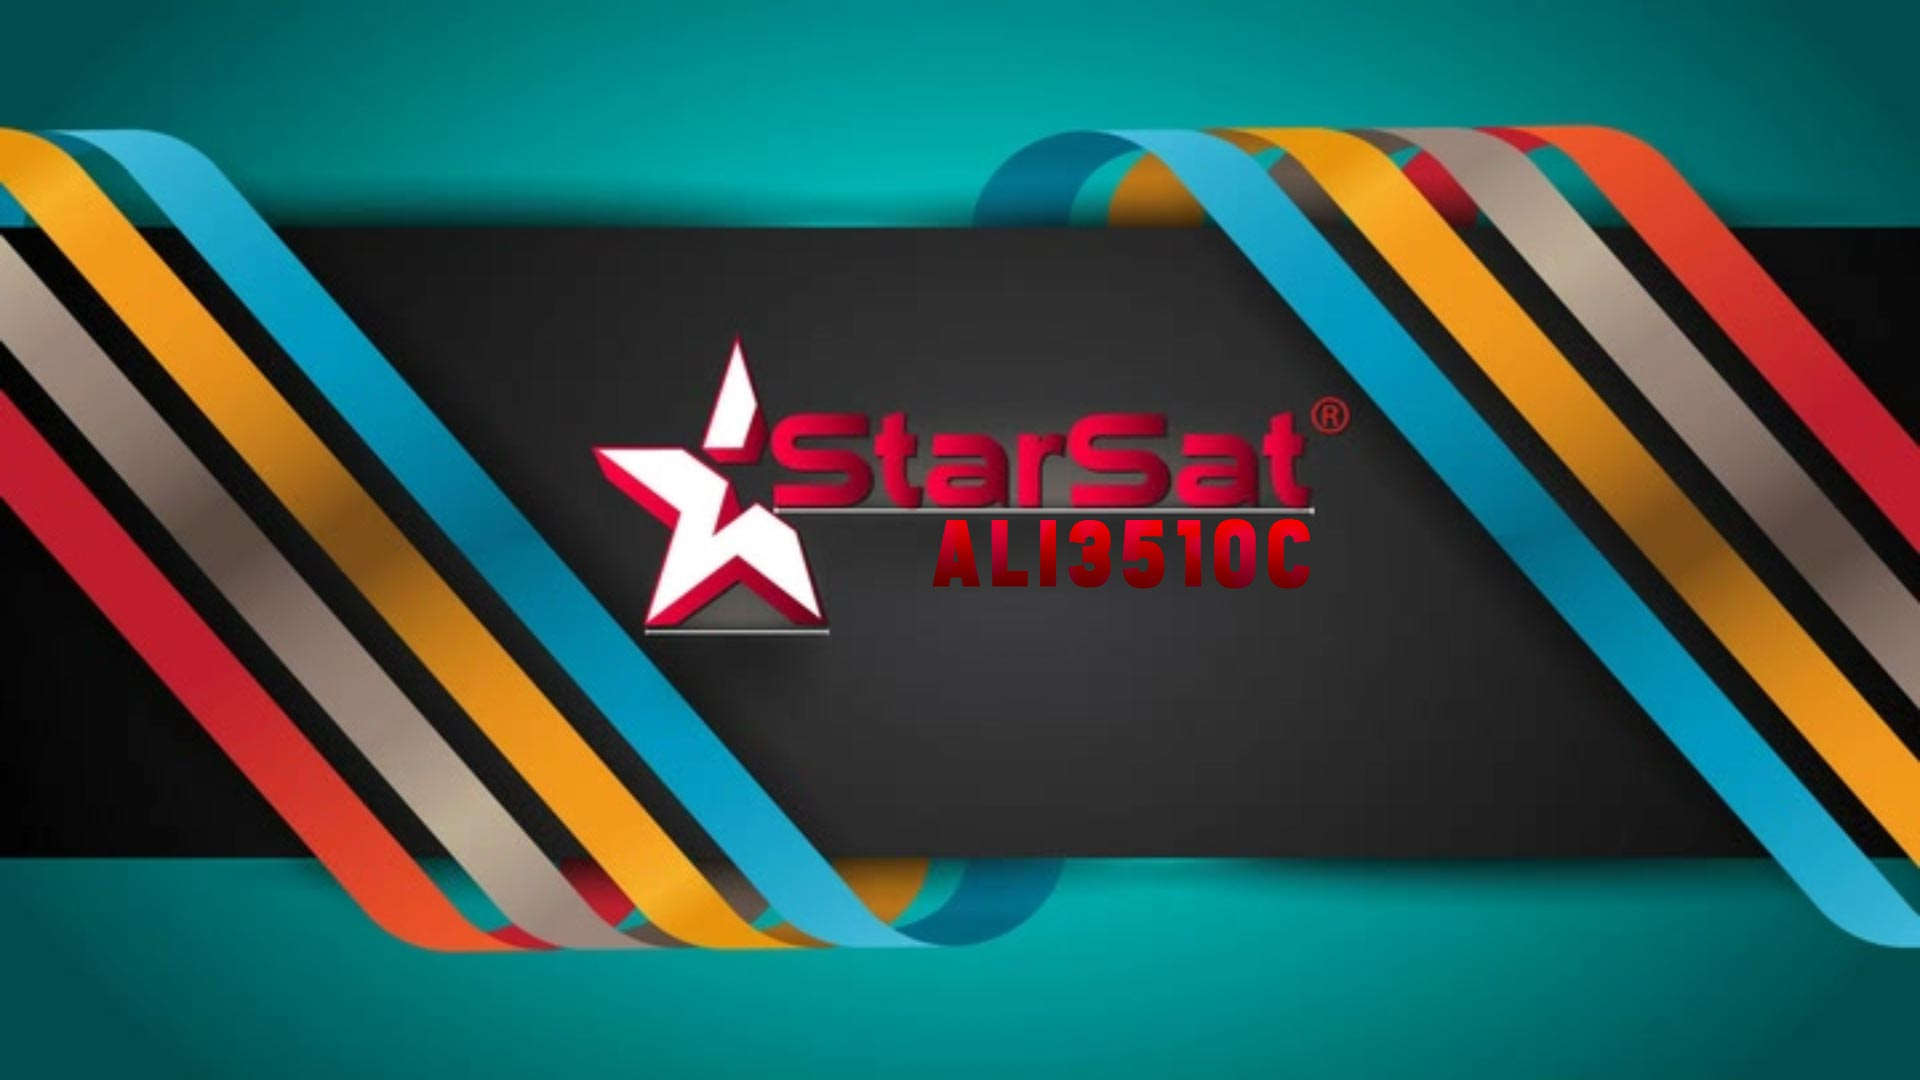 Software Starsat ALI3510C Update Firmware HW102.02.001